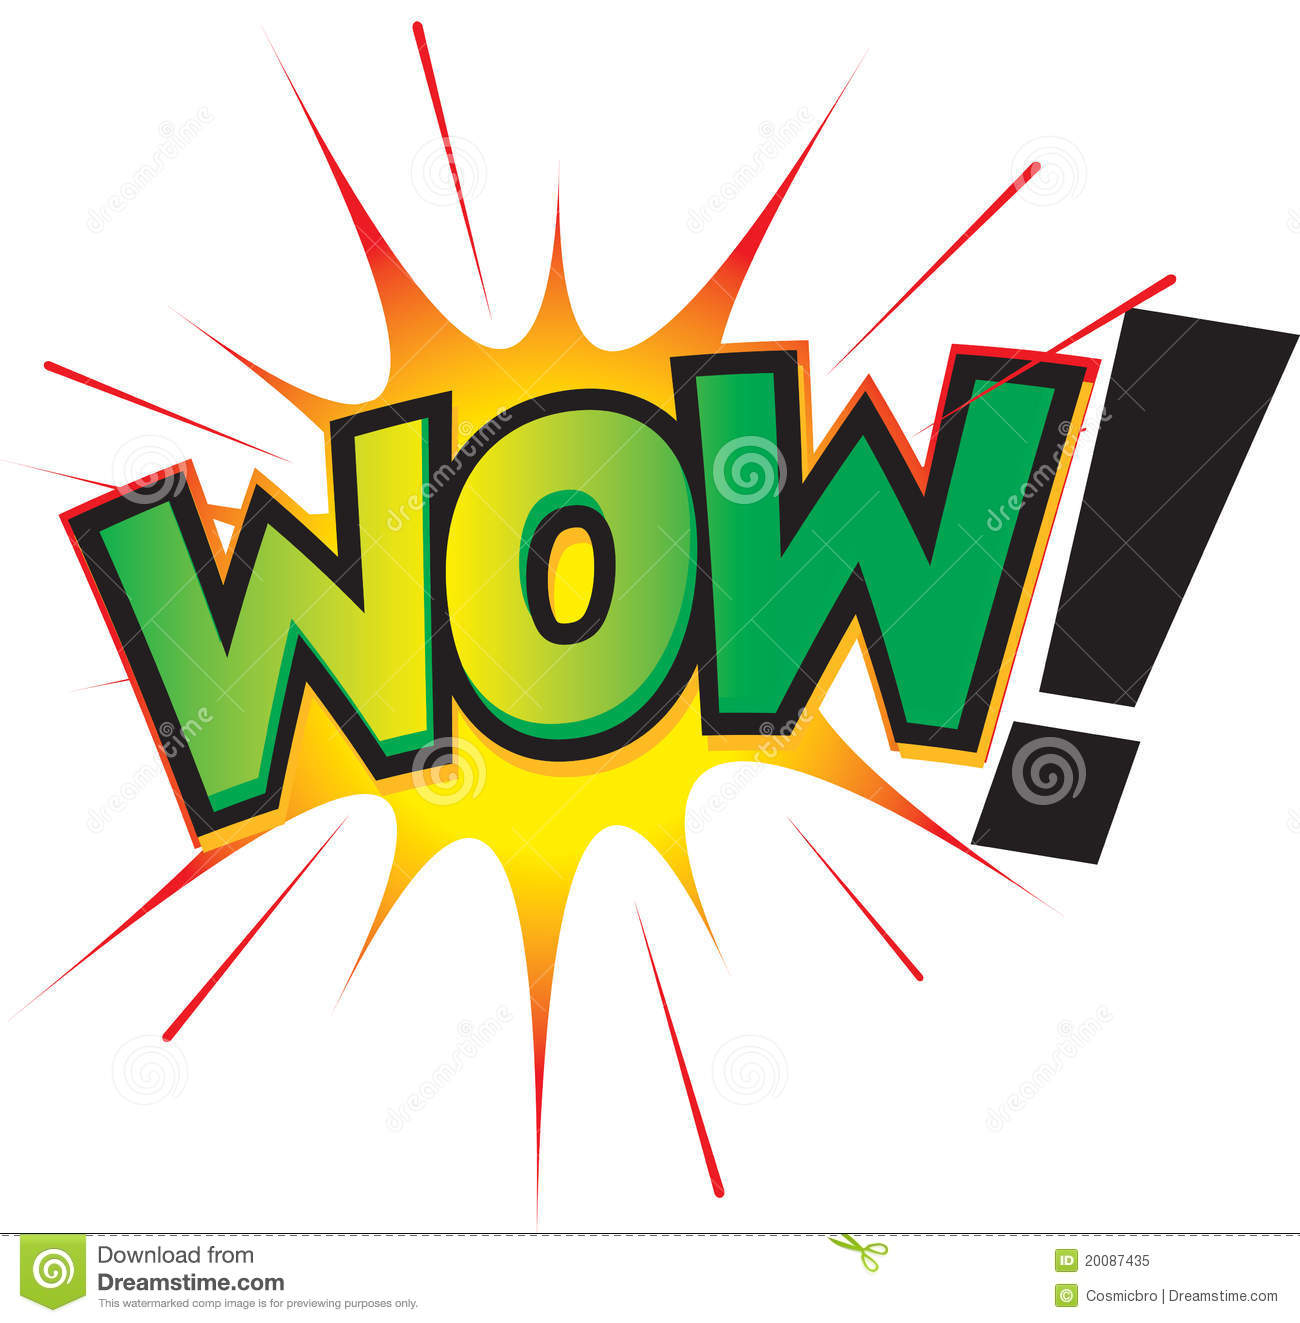 Wow  Fun Graphic Icon Royalty Free Stock Photo   Image  20087435